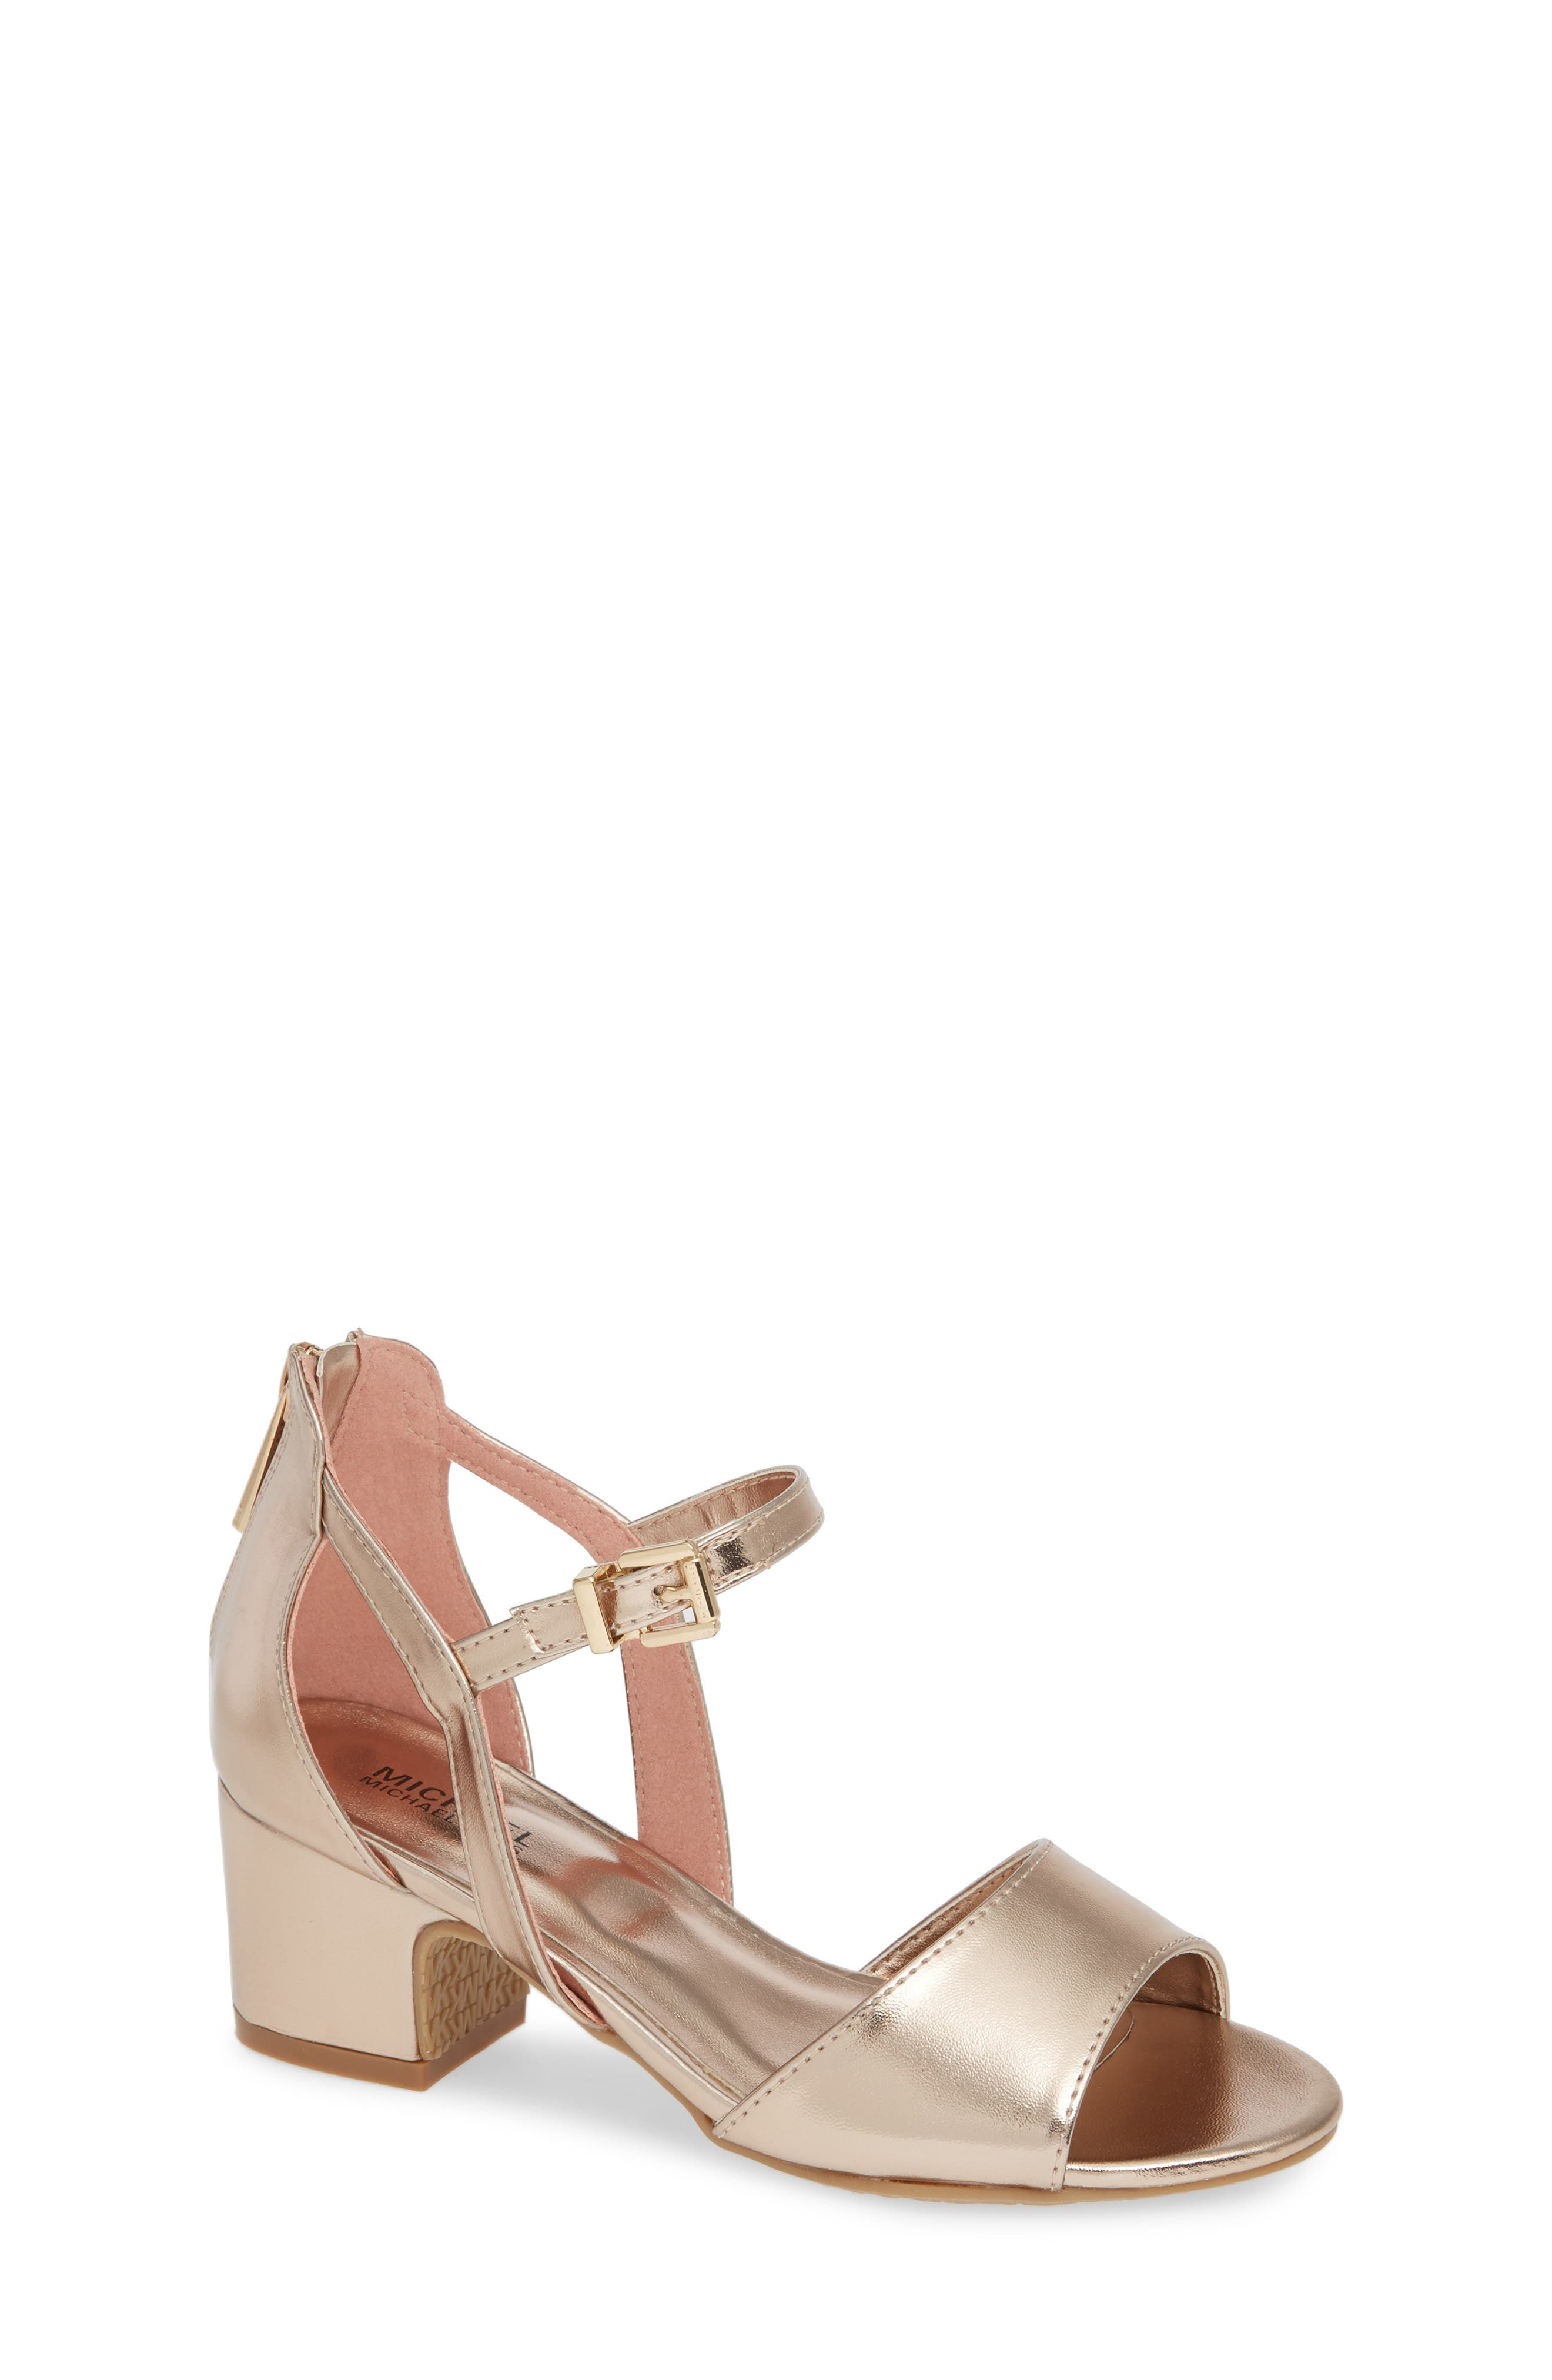 Gemini Jones Sandal,                             Main thumbnail 1, color,                             ROSE GOLD